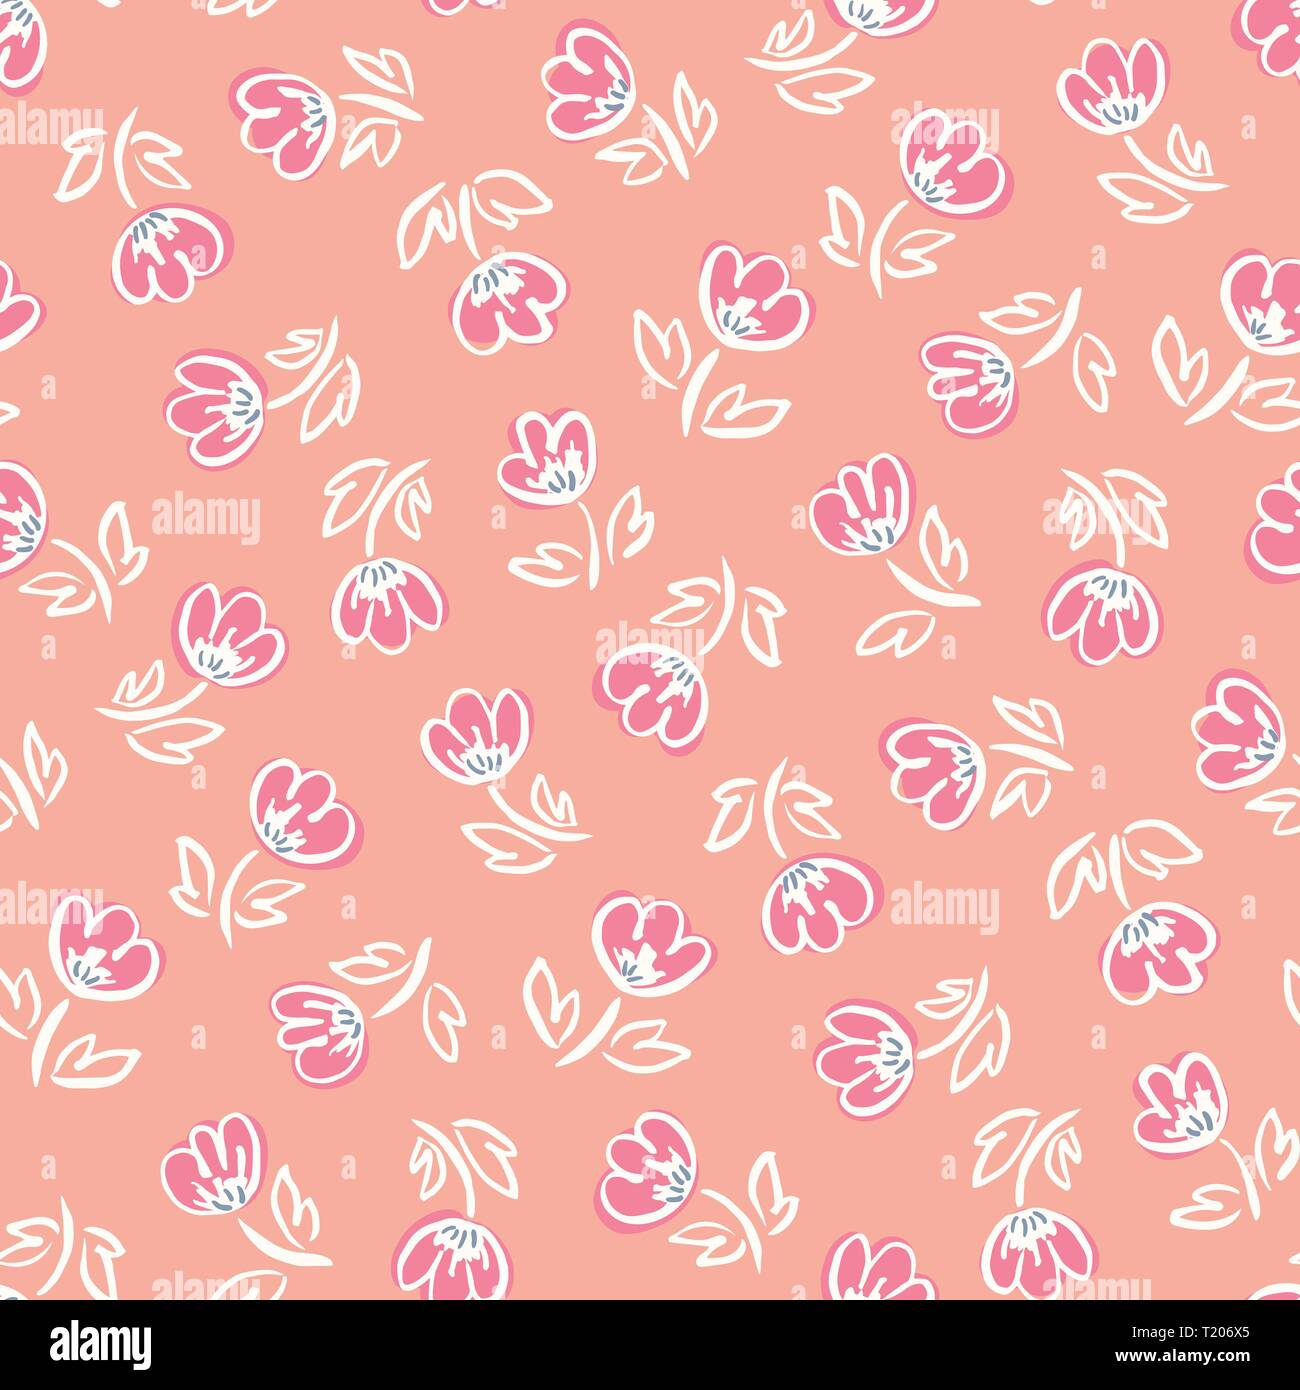 Cute abstract hand-drawn tulip flowers on coral background vector seamless pattern. Whimsical floral print. Simplistic ditsy blooms. Retro minimal sty - Stock Image